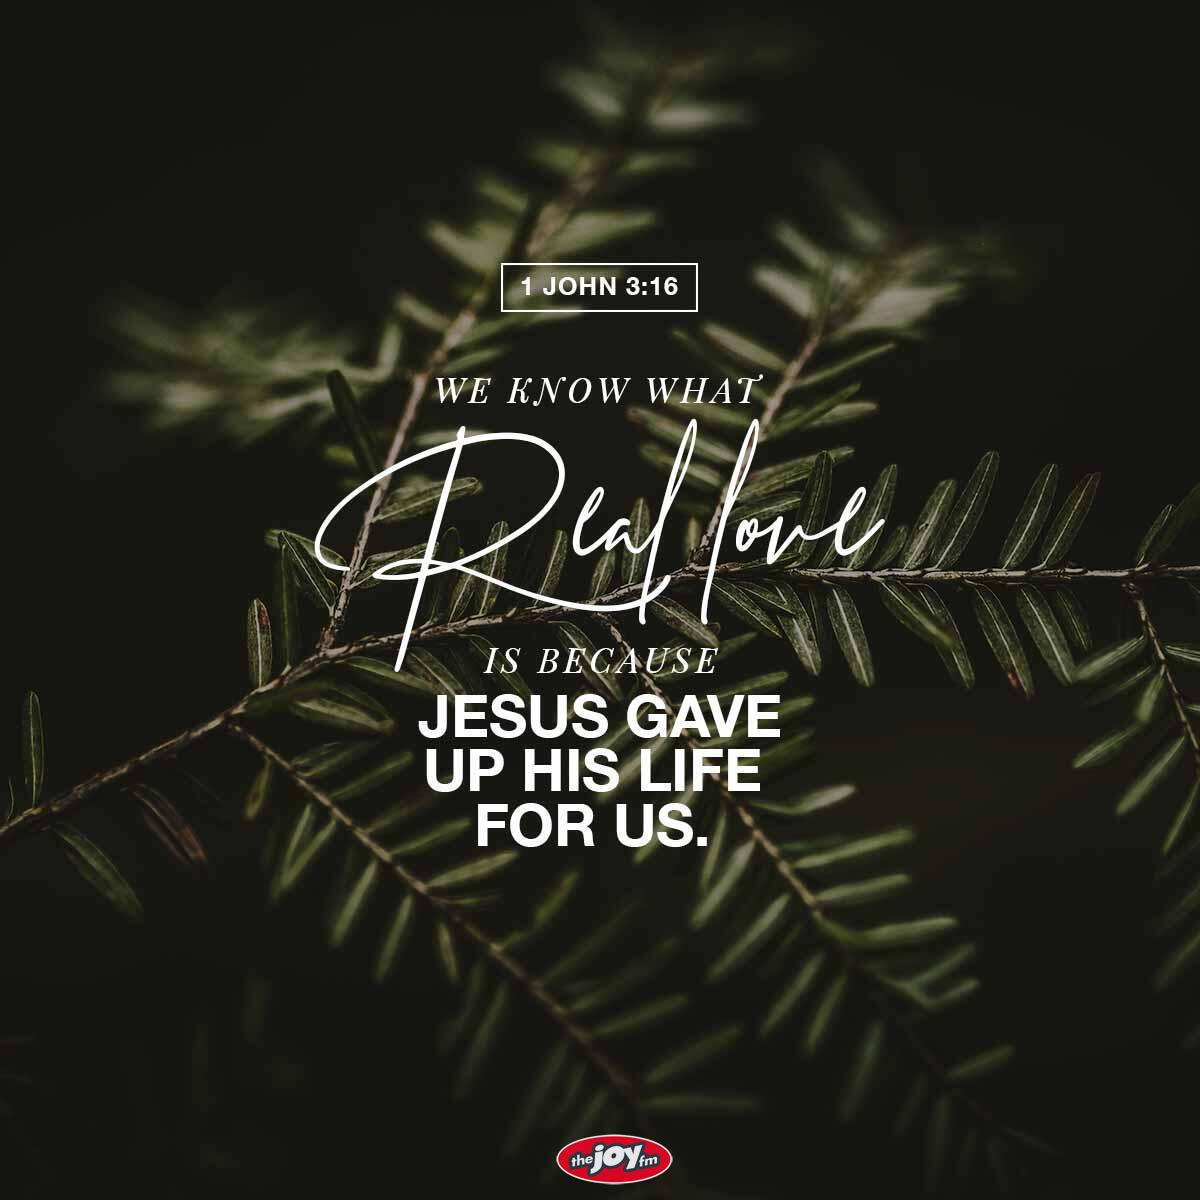 1 John 3:16 - Verse of the Day